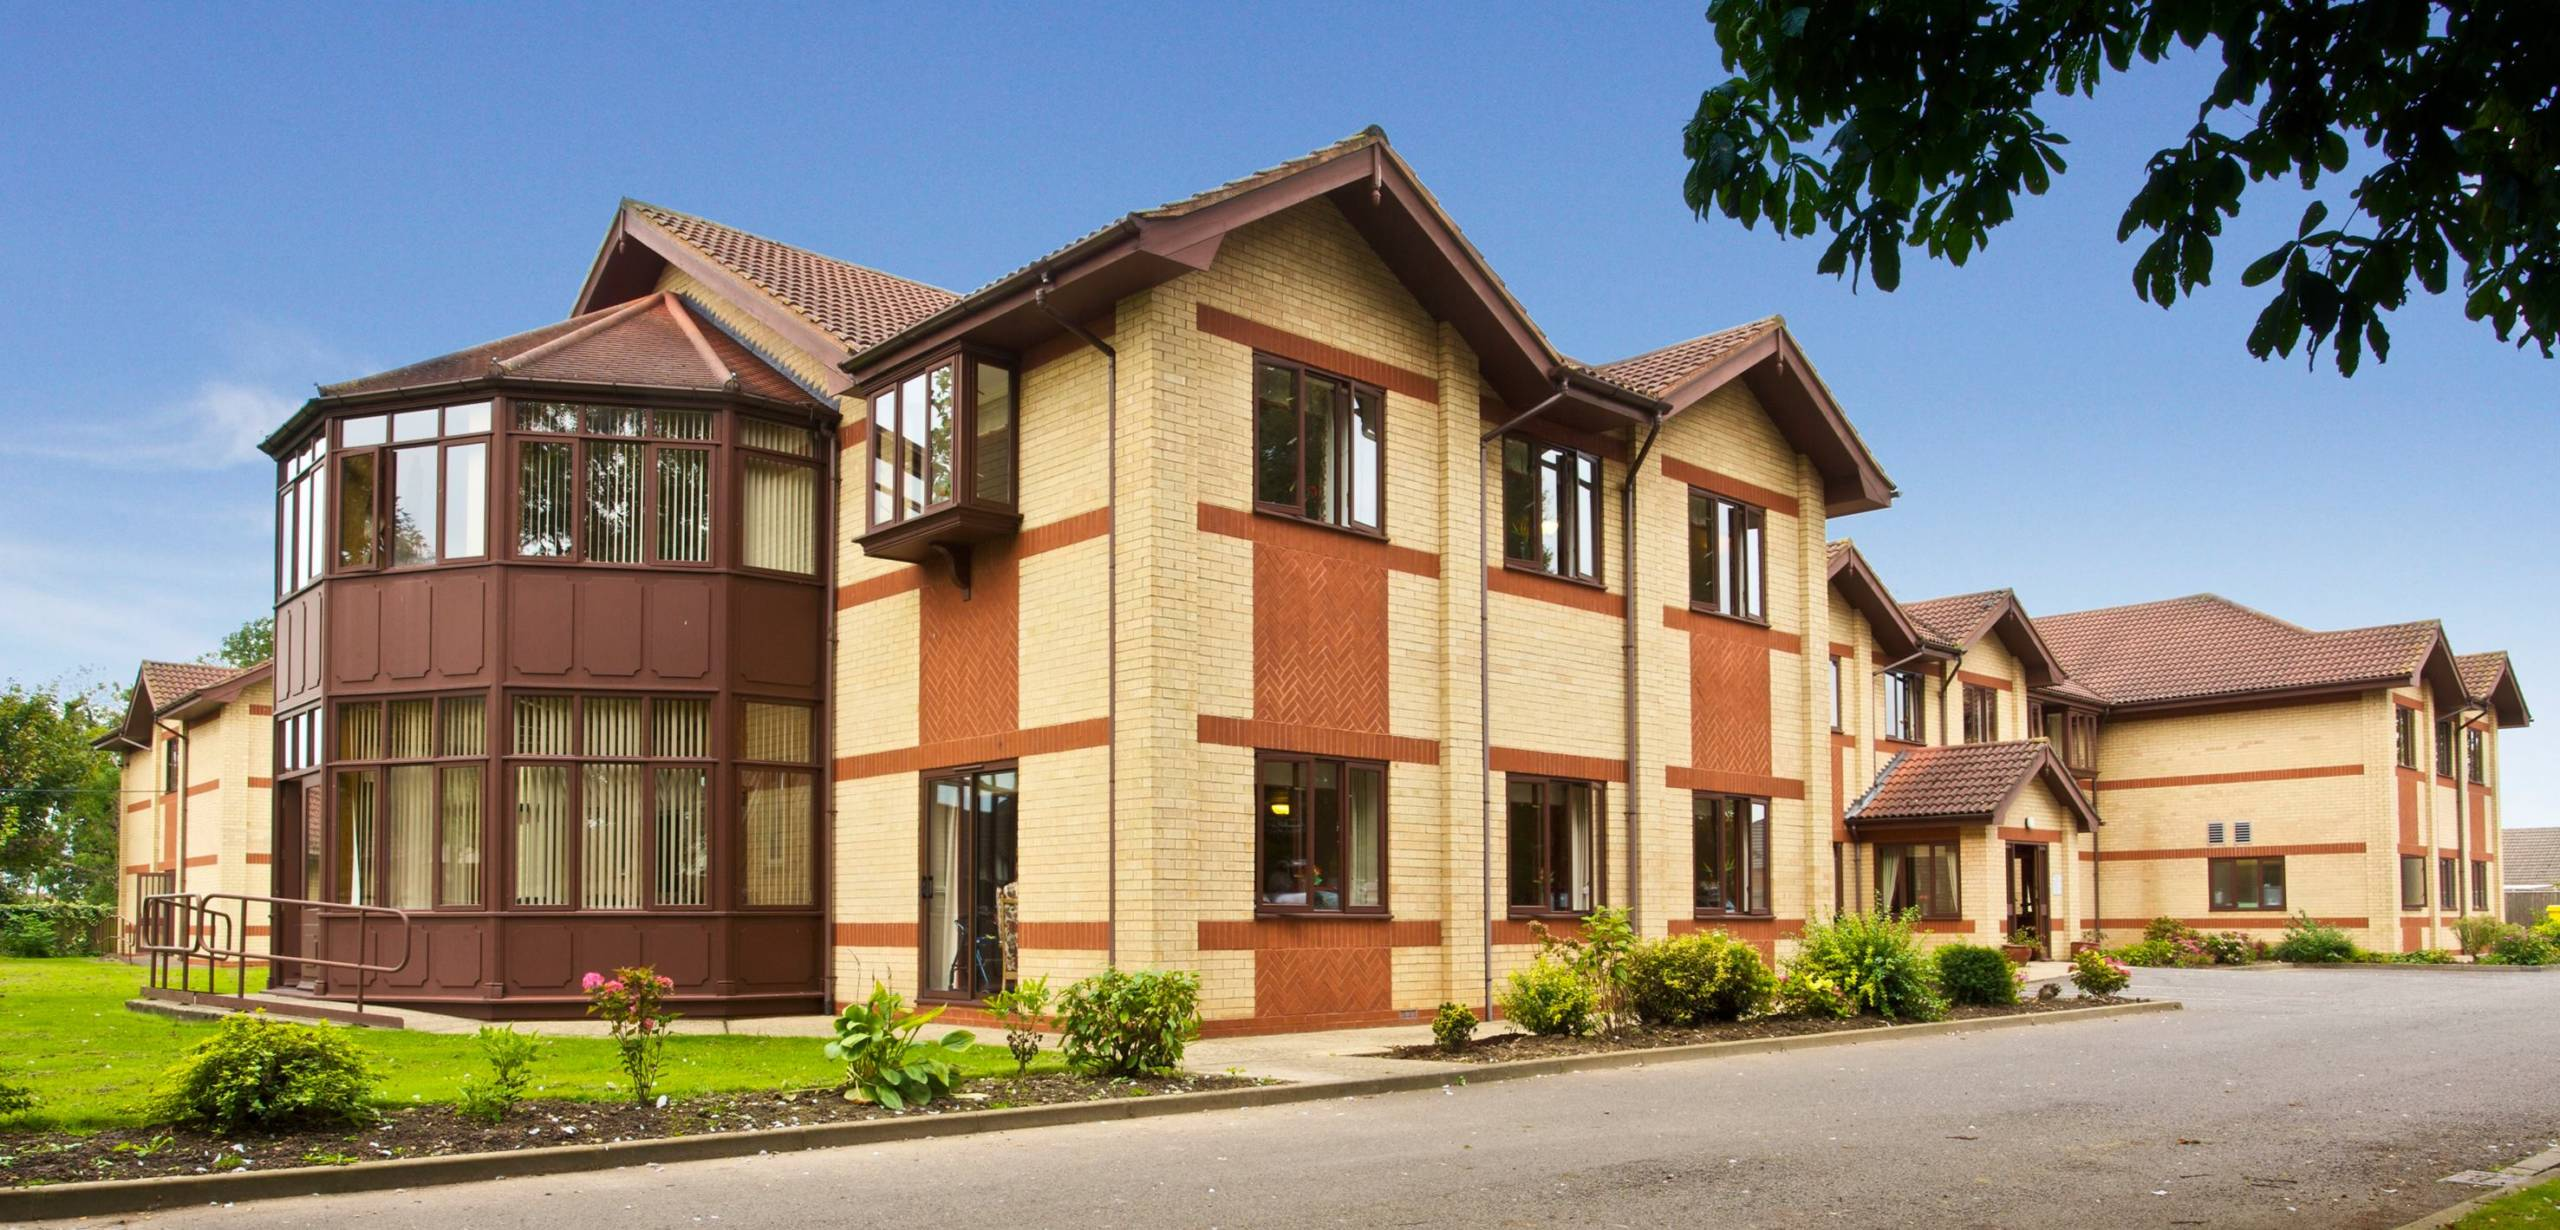 Carterwood delighted to support Elevation in their recent acquisition of Tanglewood Care Homes